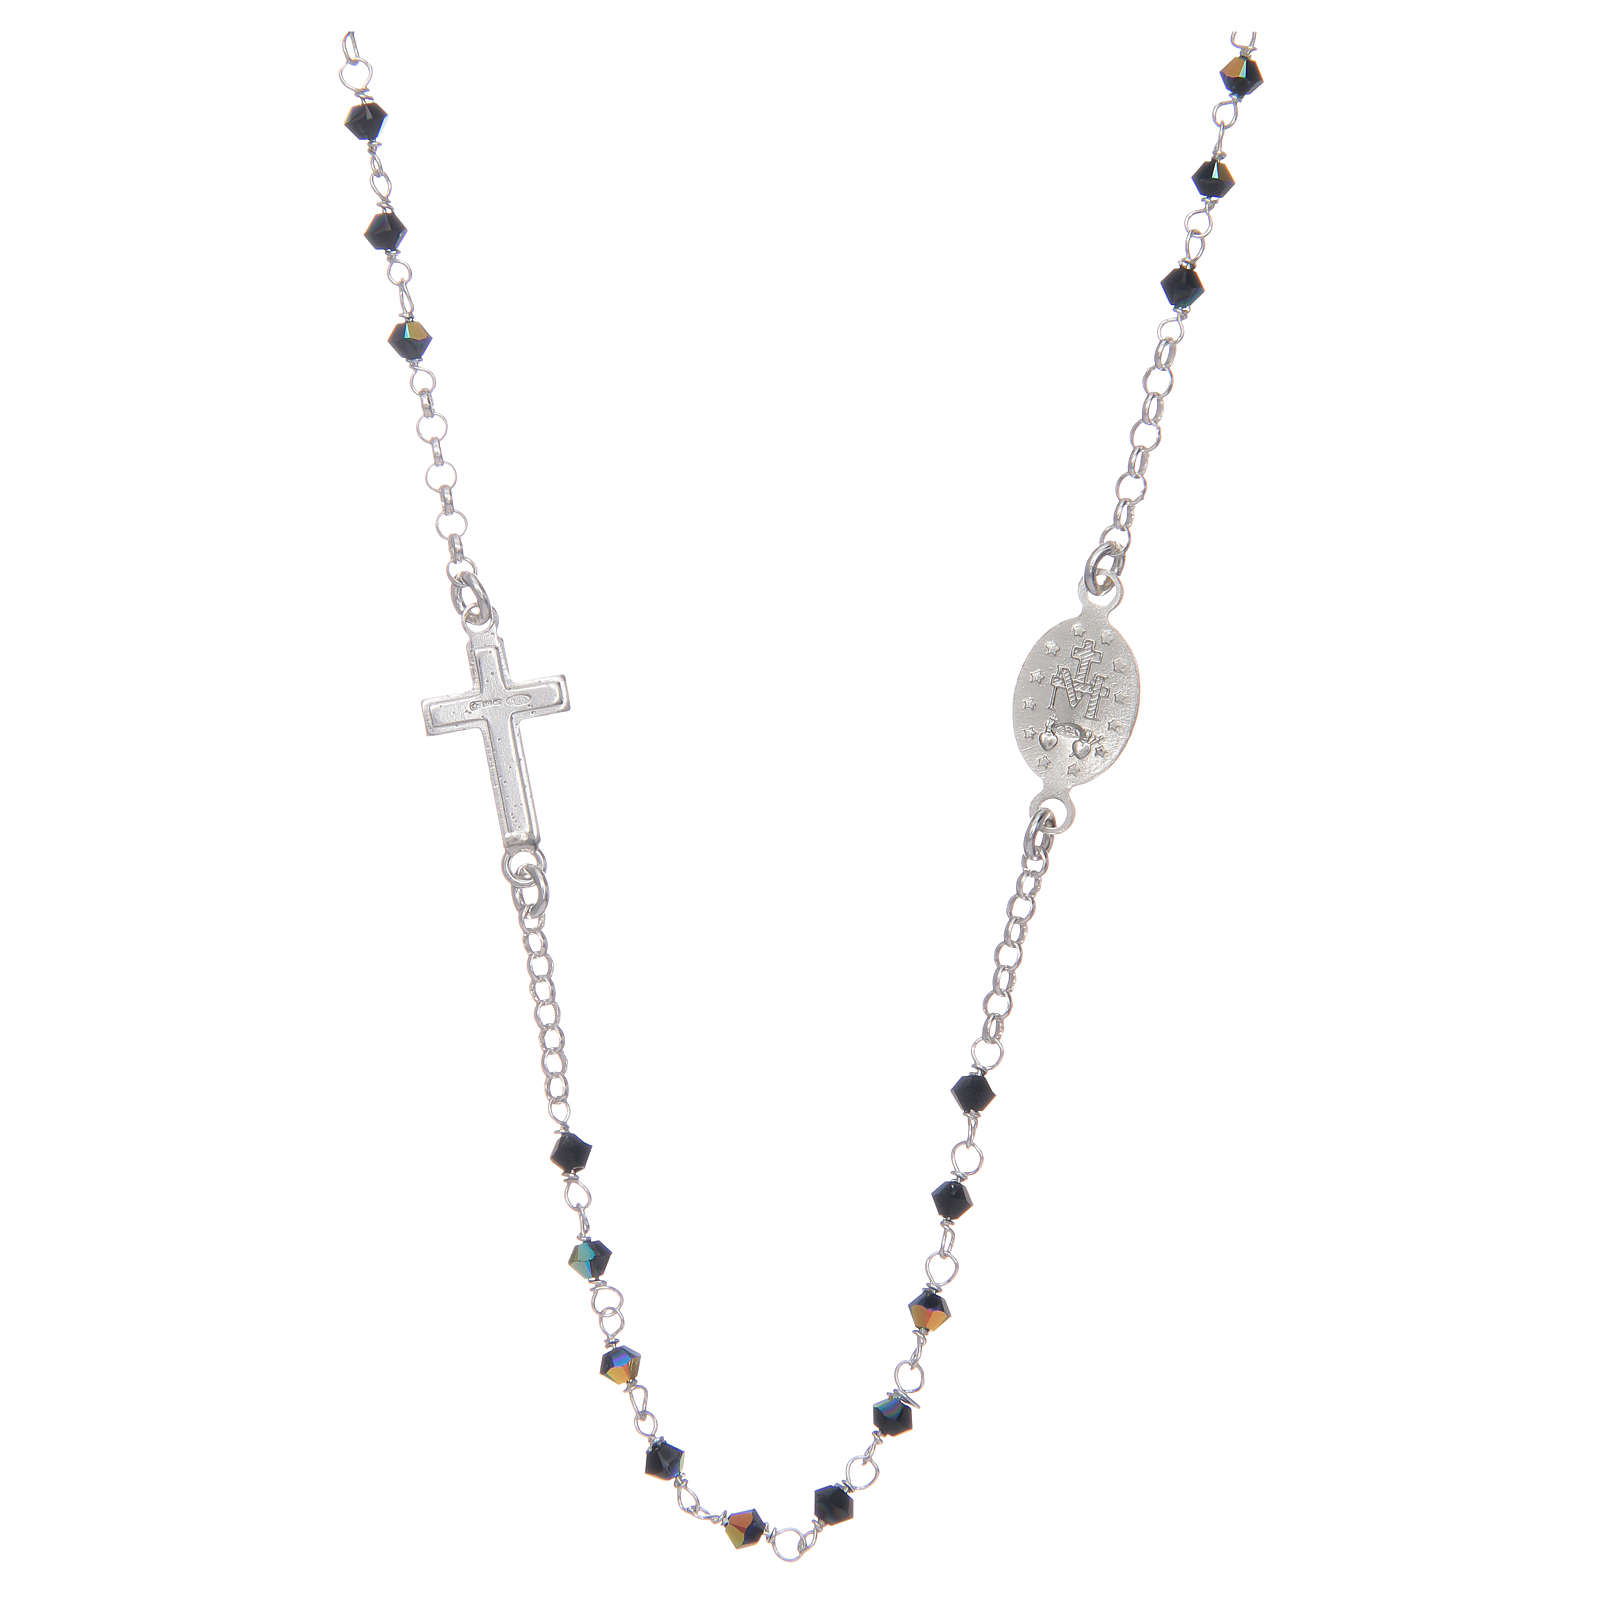 Rosary necklace for men in 925 sterling silver with black Swarovski grains 4